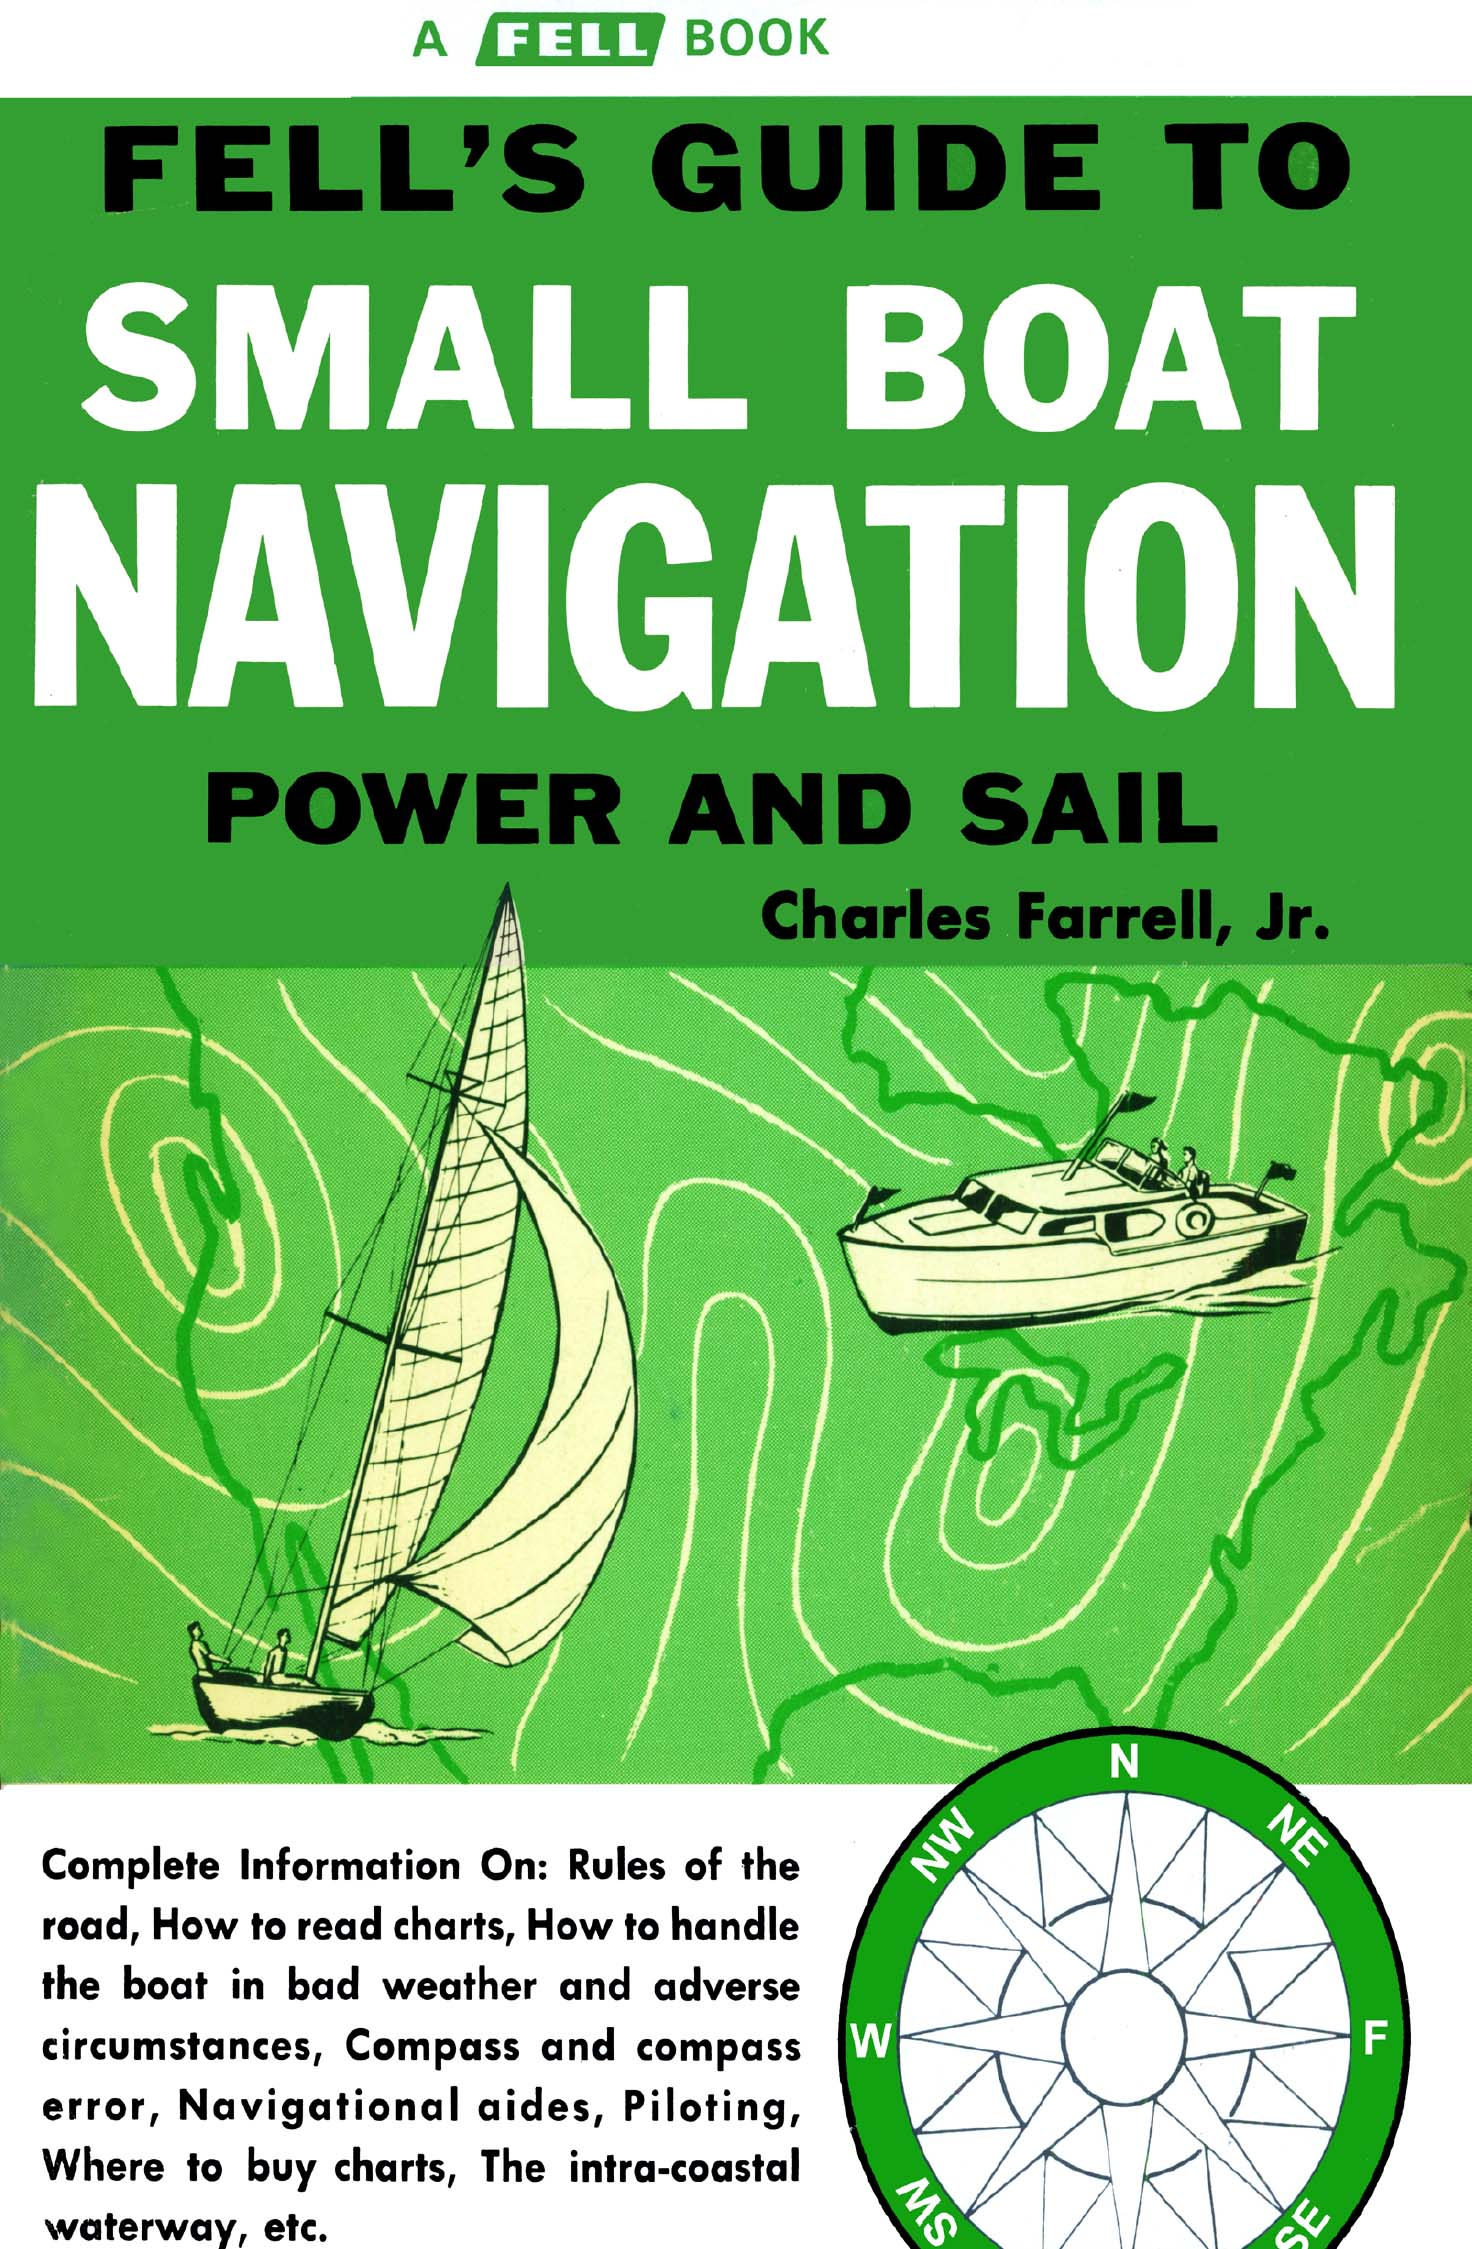 Fell's Guide to Small Boat Navigation - Power and Sail